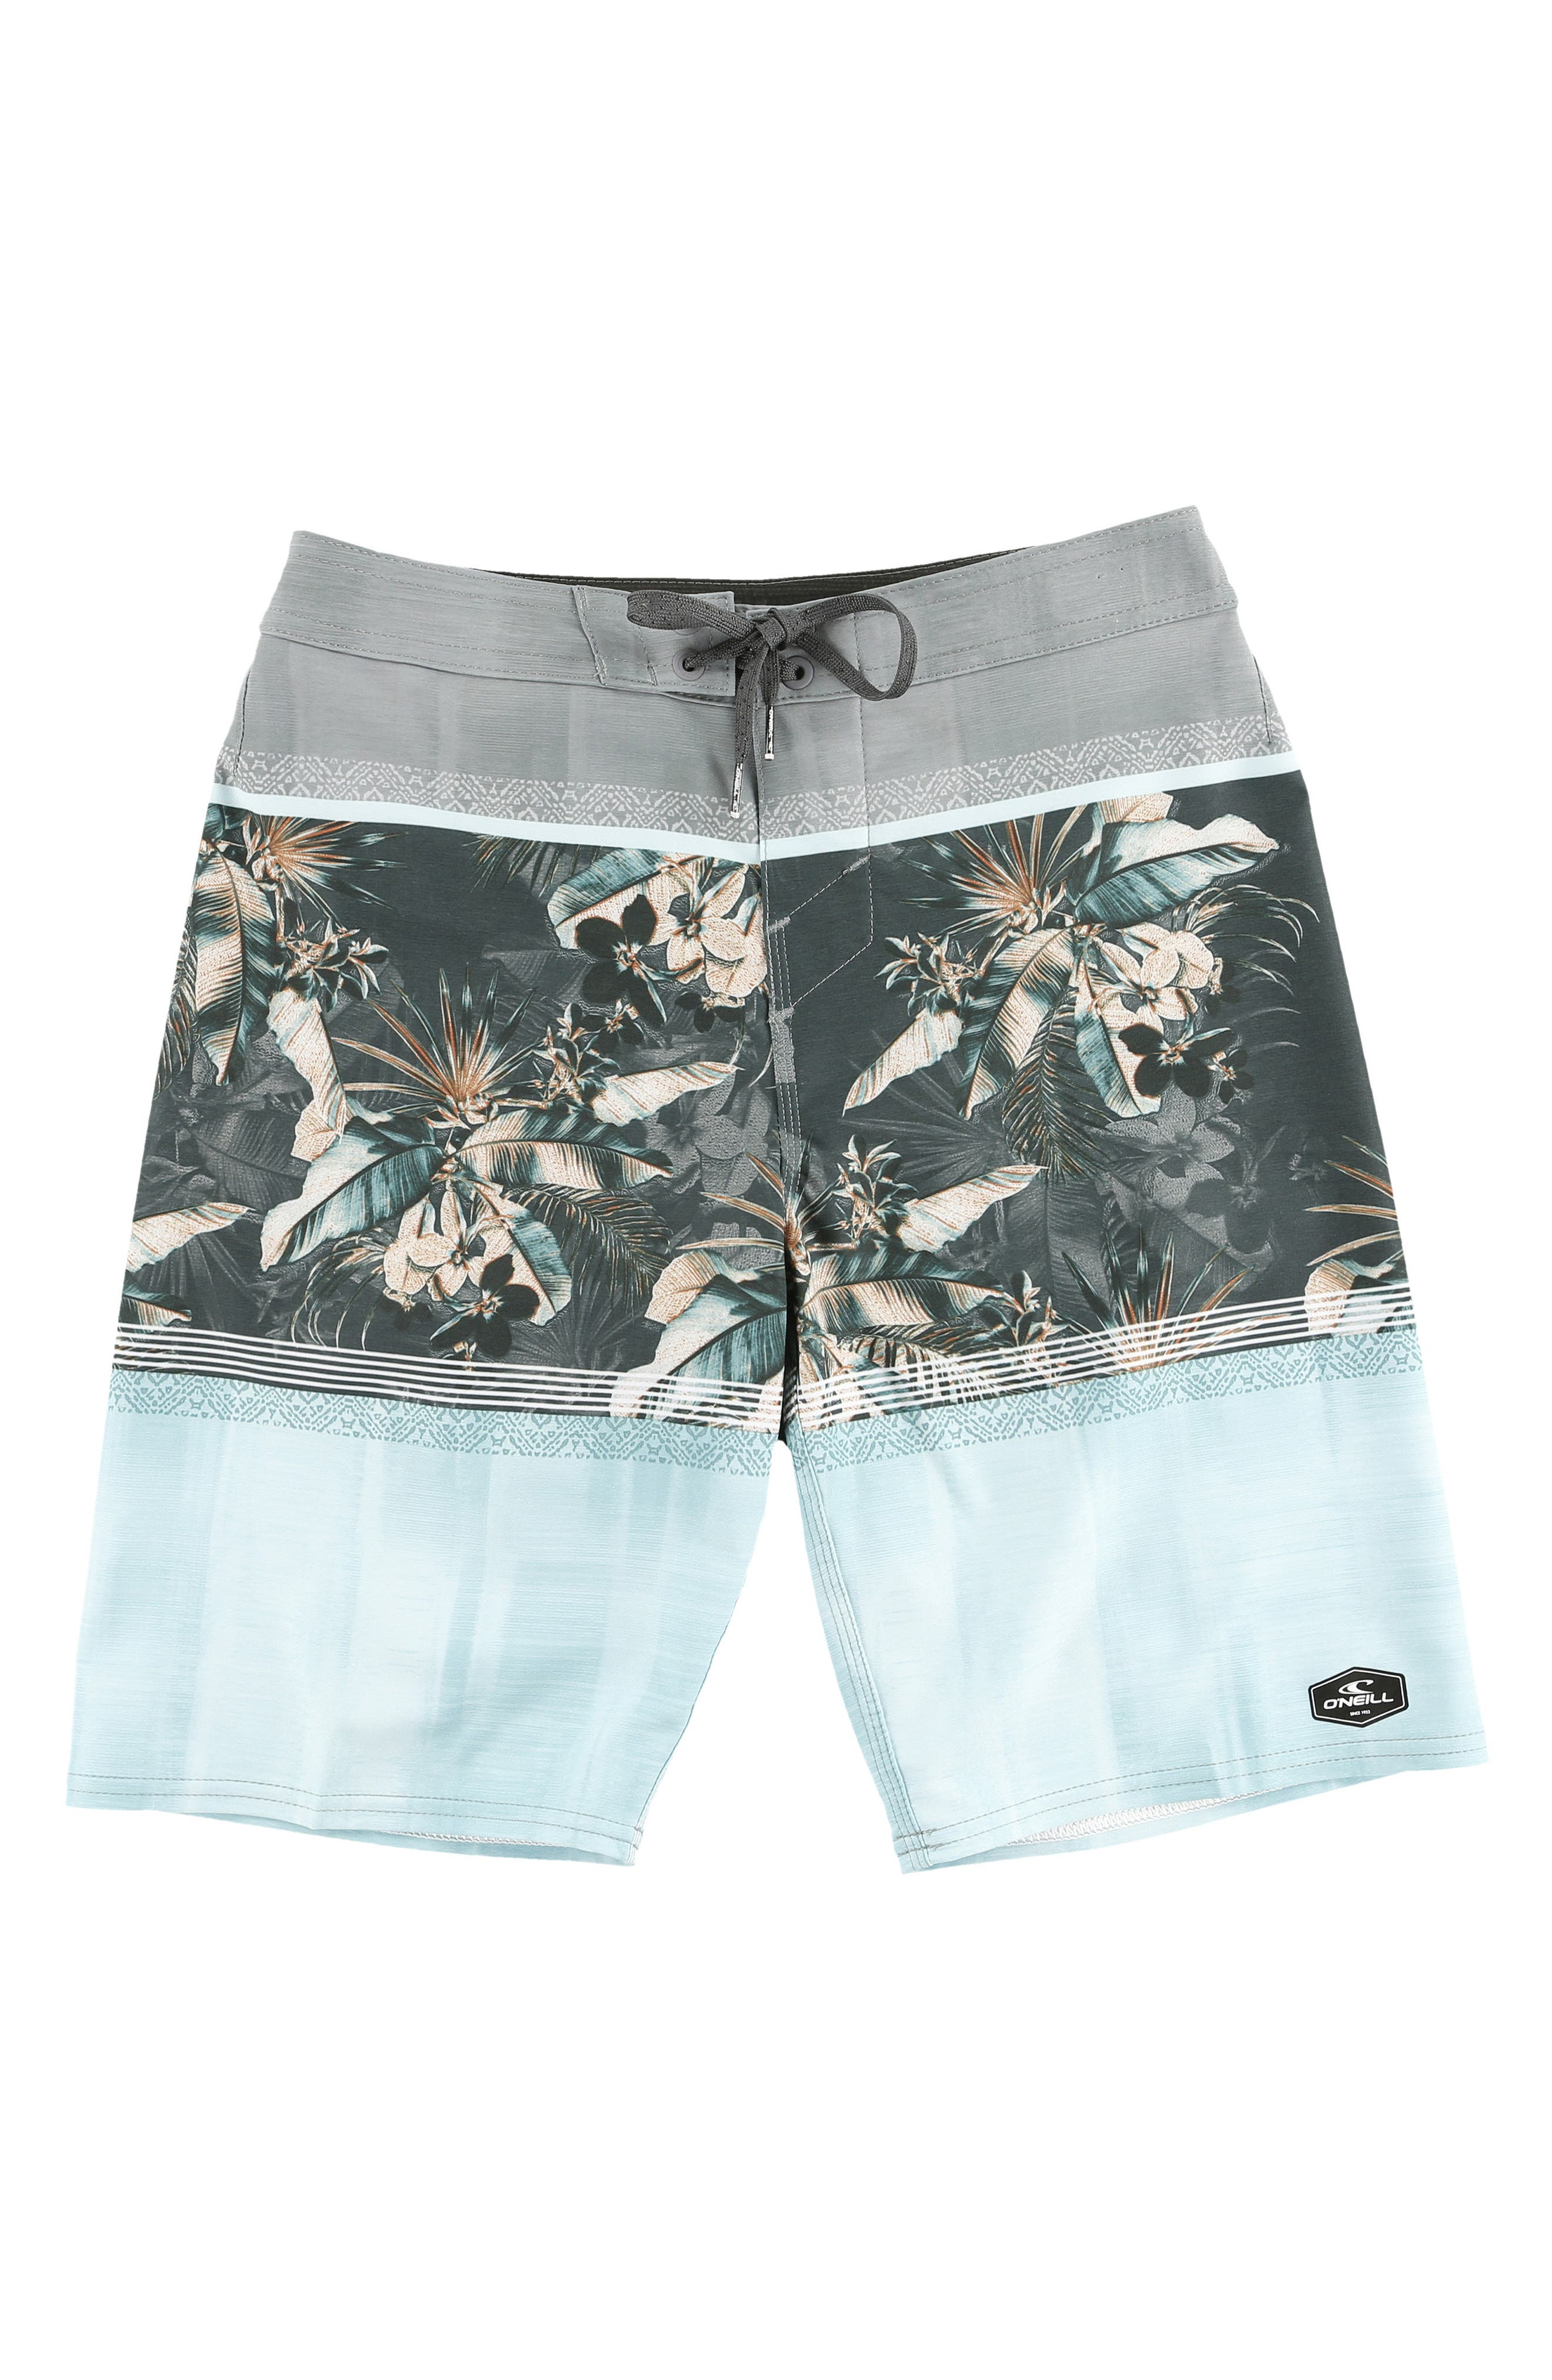 Hyperfreak Board Shorts,                         Main,                         color, TURQUOISE